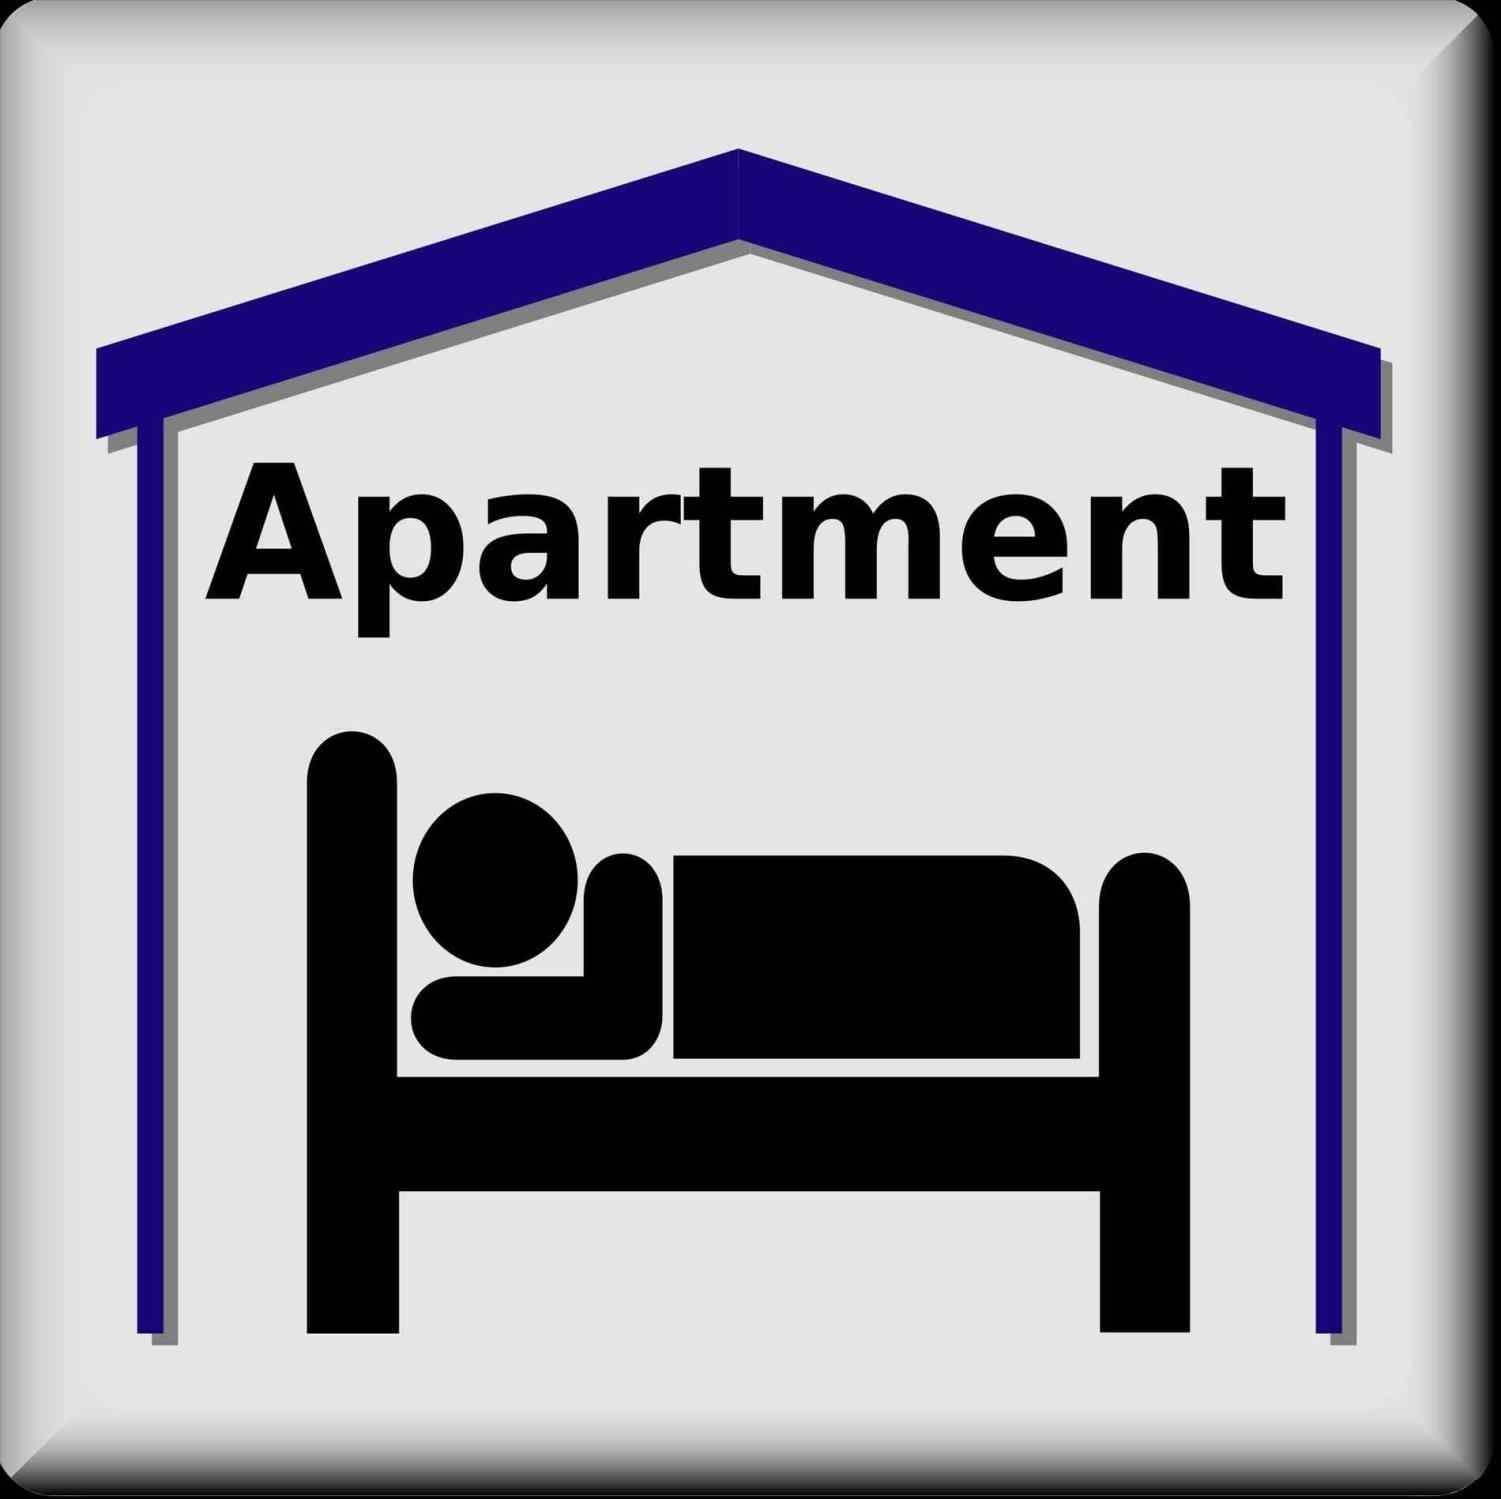 Apartment clipart apt. Apartments athelred com collection